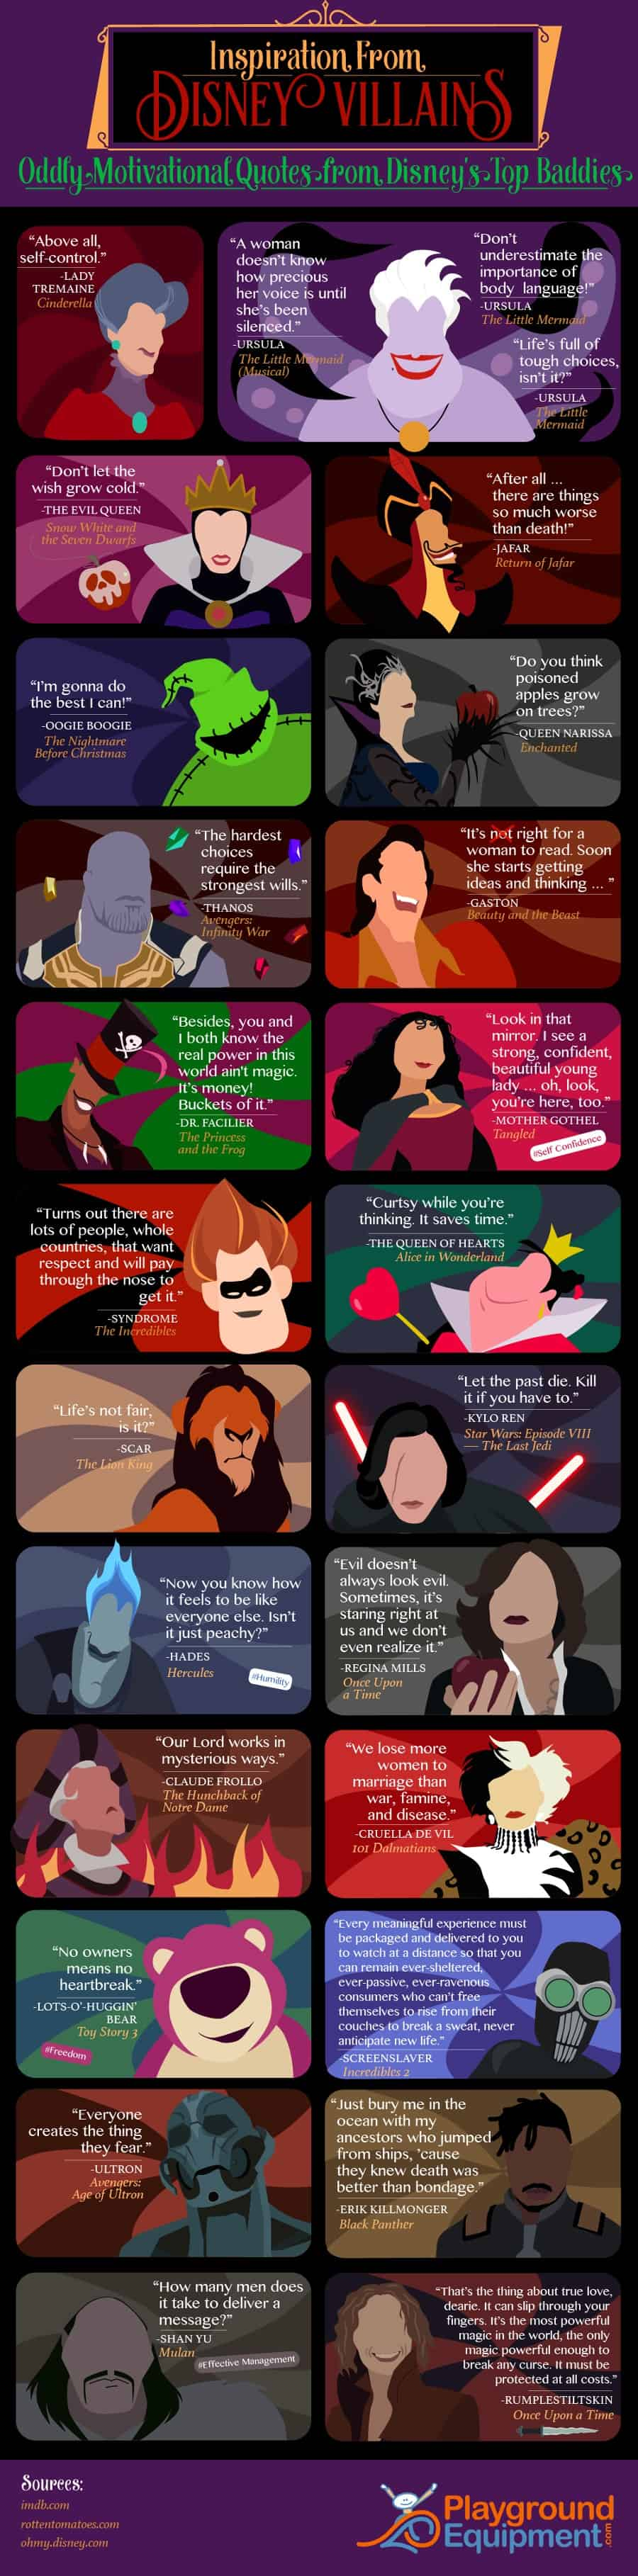 Oddly Motivational and Inspirational Quotes from Disney ...